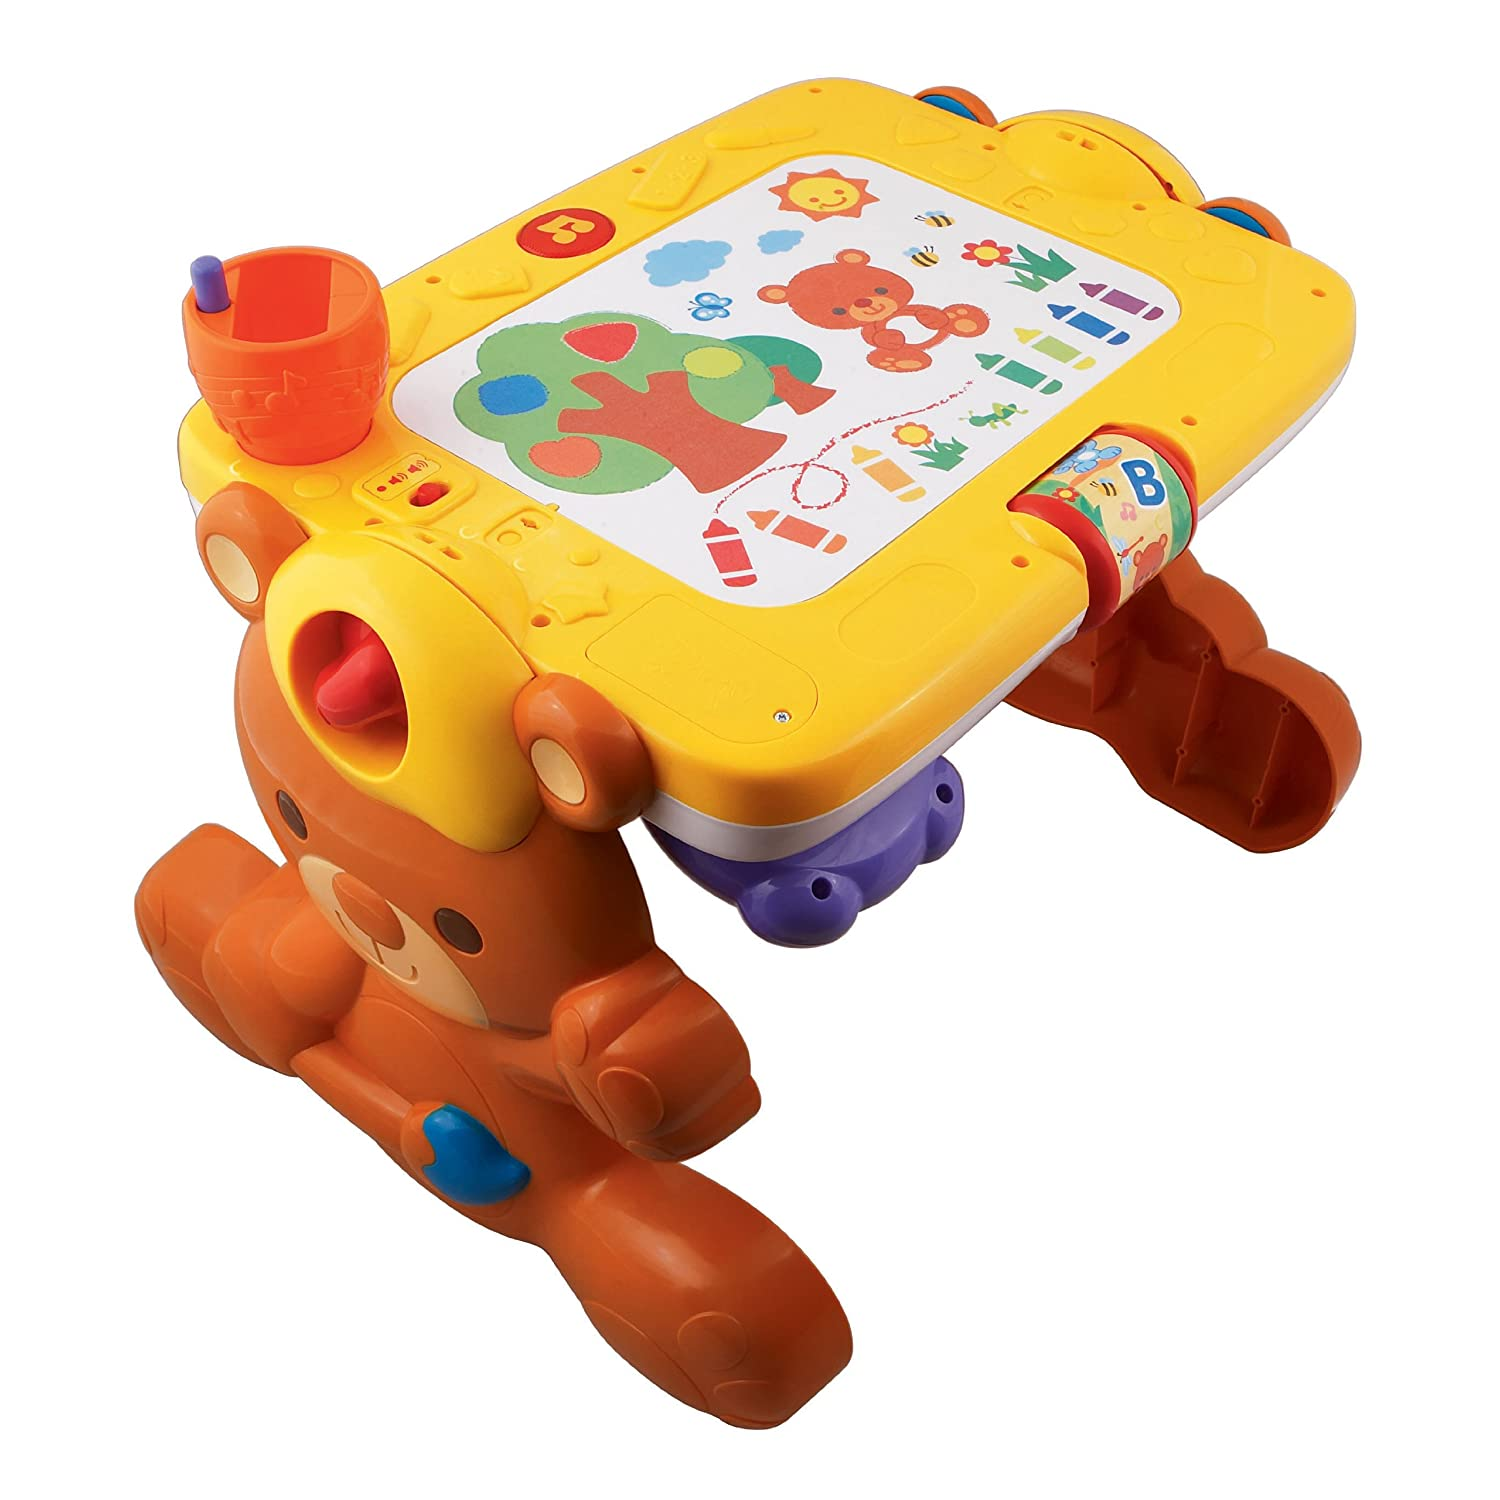 Vtech 2 in 1 alphabet art piano musical discovery learning for Bureau 3 en 1 vtech